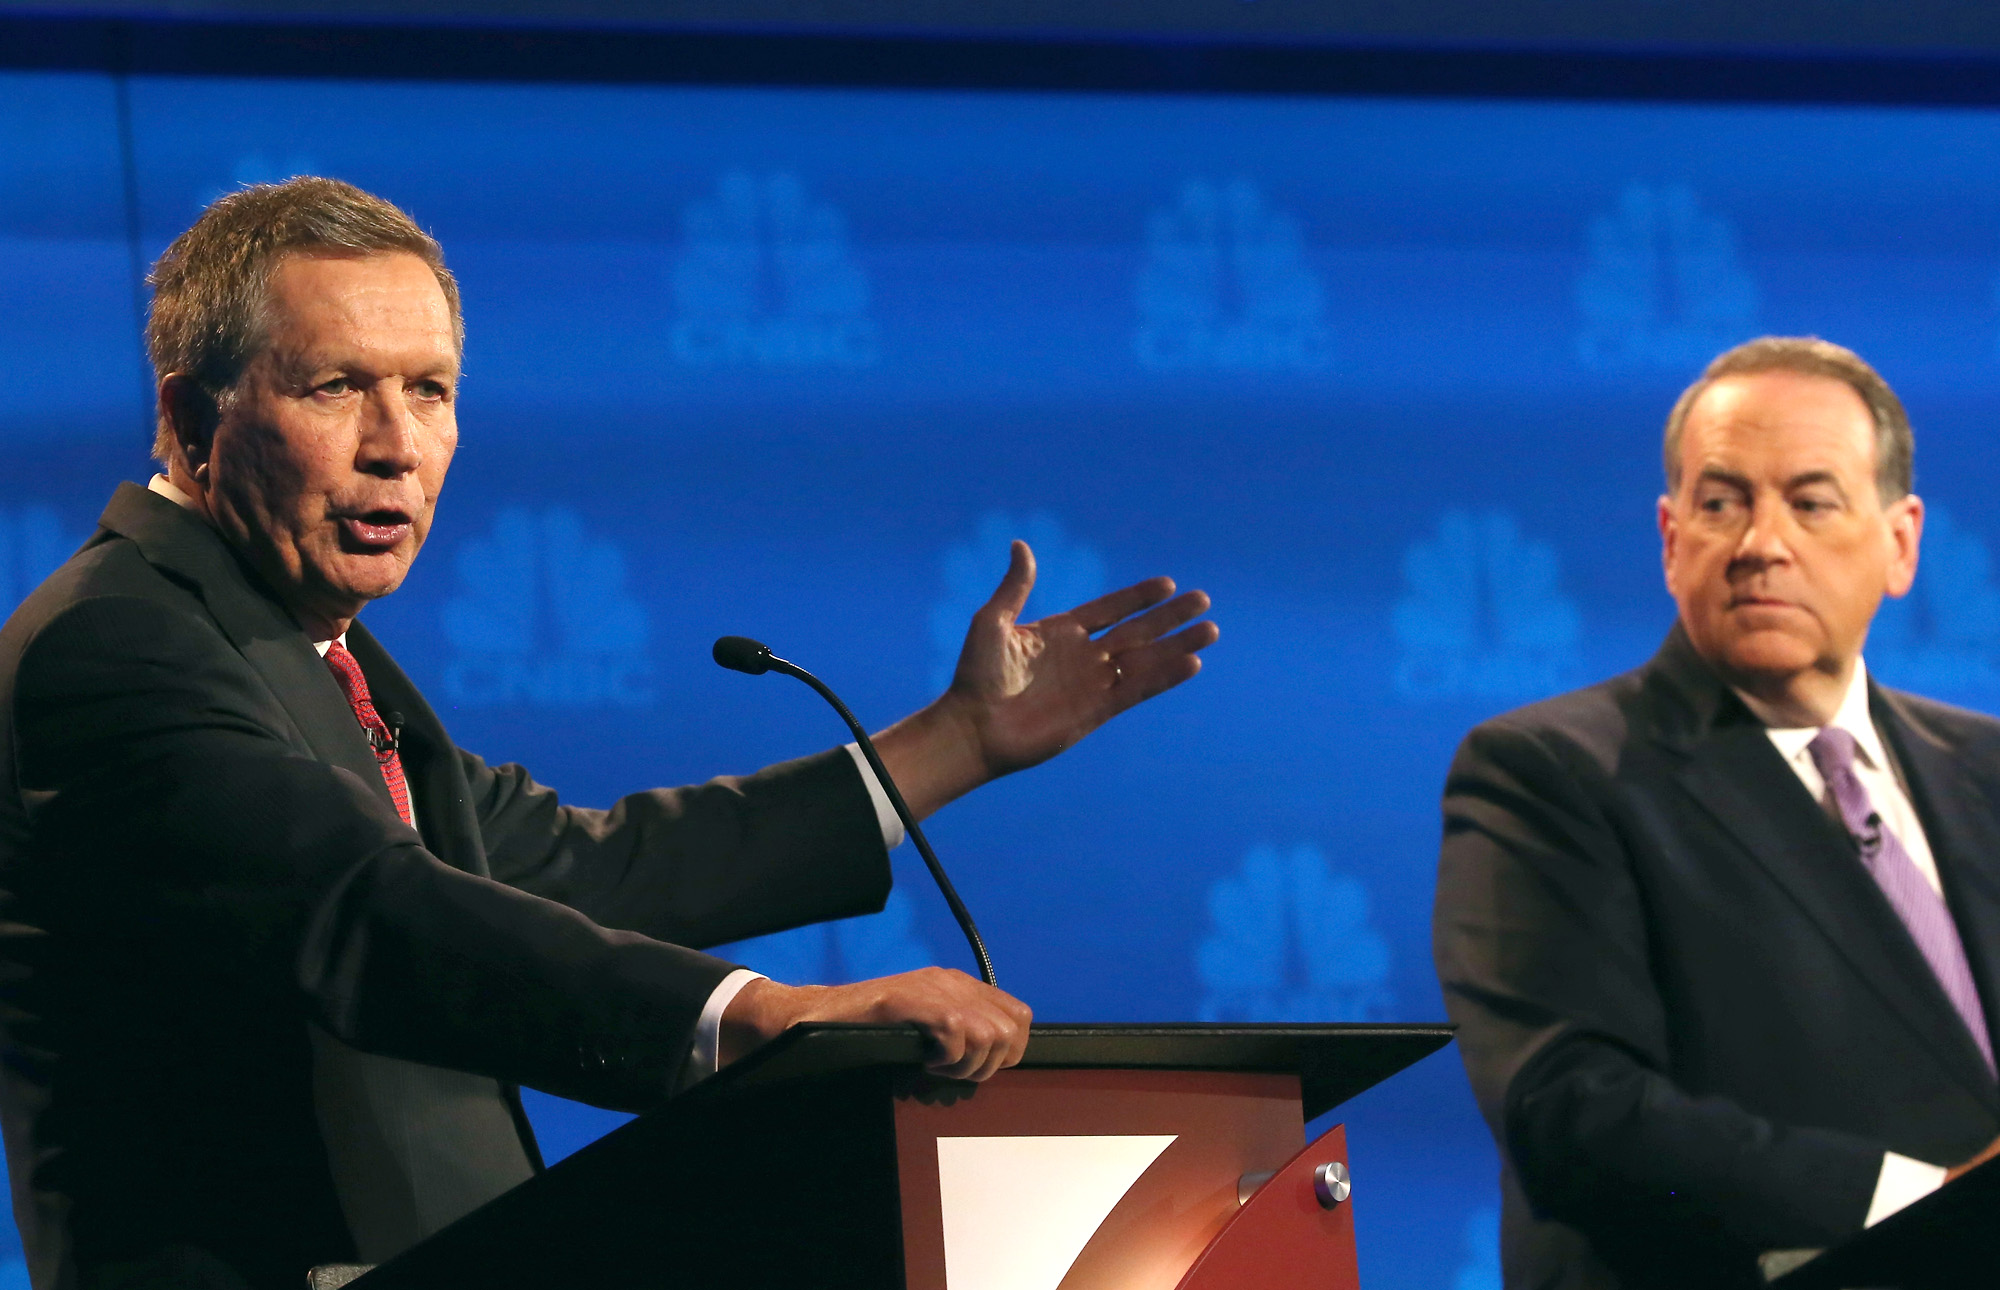 BOULDER, CO - OCTOBER 28: Presidential candidates Ohio Governor John Kasich (L-R) speaks while Mike Huckabee looks on during the CNBC Republican Presidential Debate at University of Colorados Coors Events Center October 28, 2015 in Boulder, Colorado. Fourteen Republican presidential candidates are participating in the third set of Republican presidential debates. (Photo by Justin Sullivan/Getty Images)